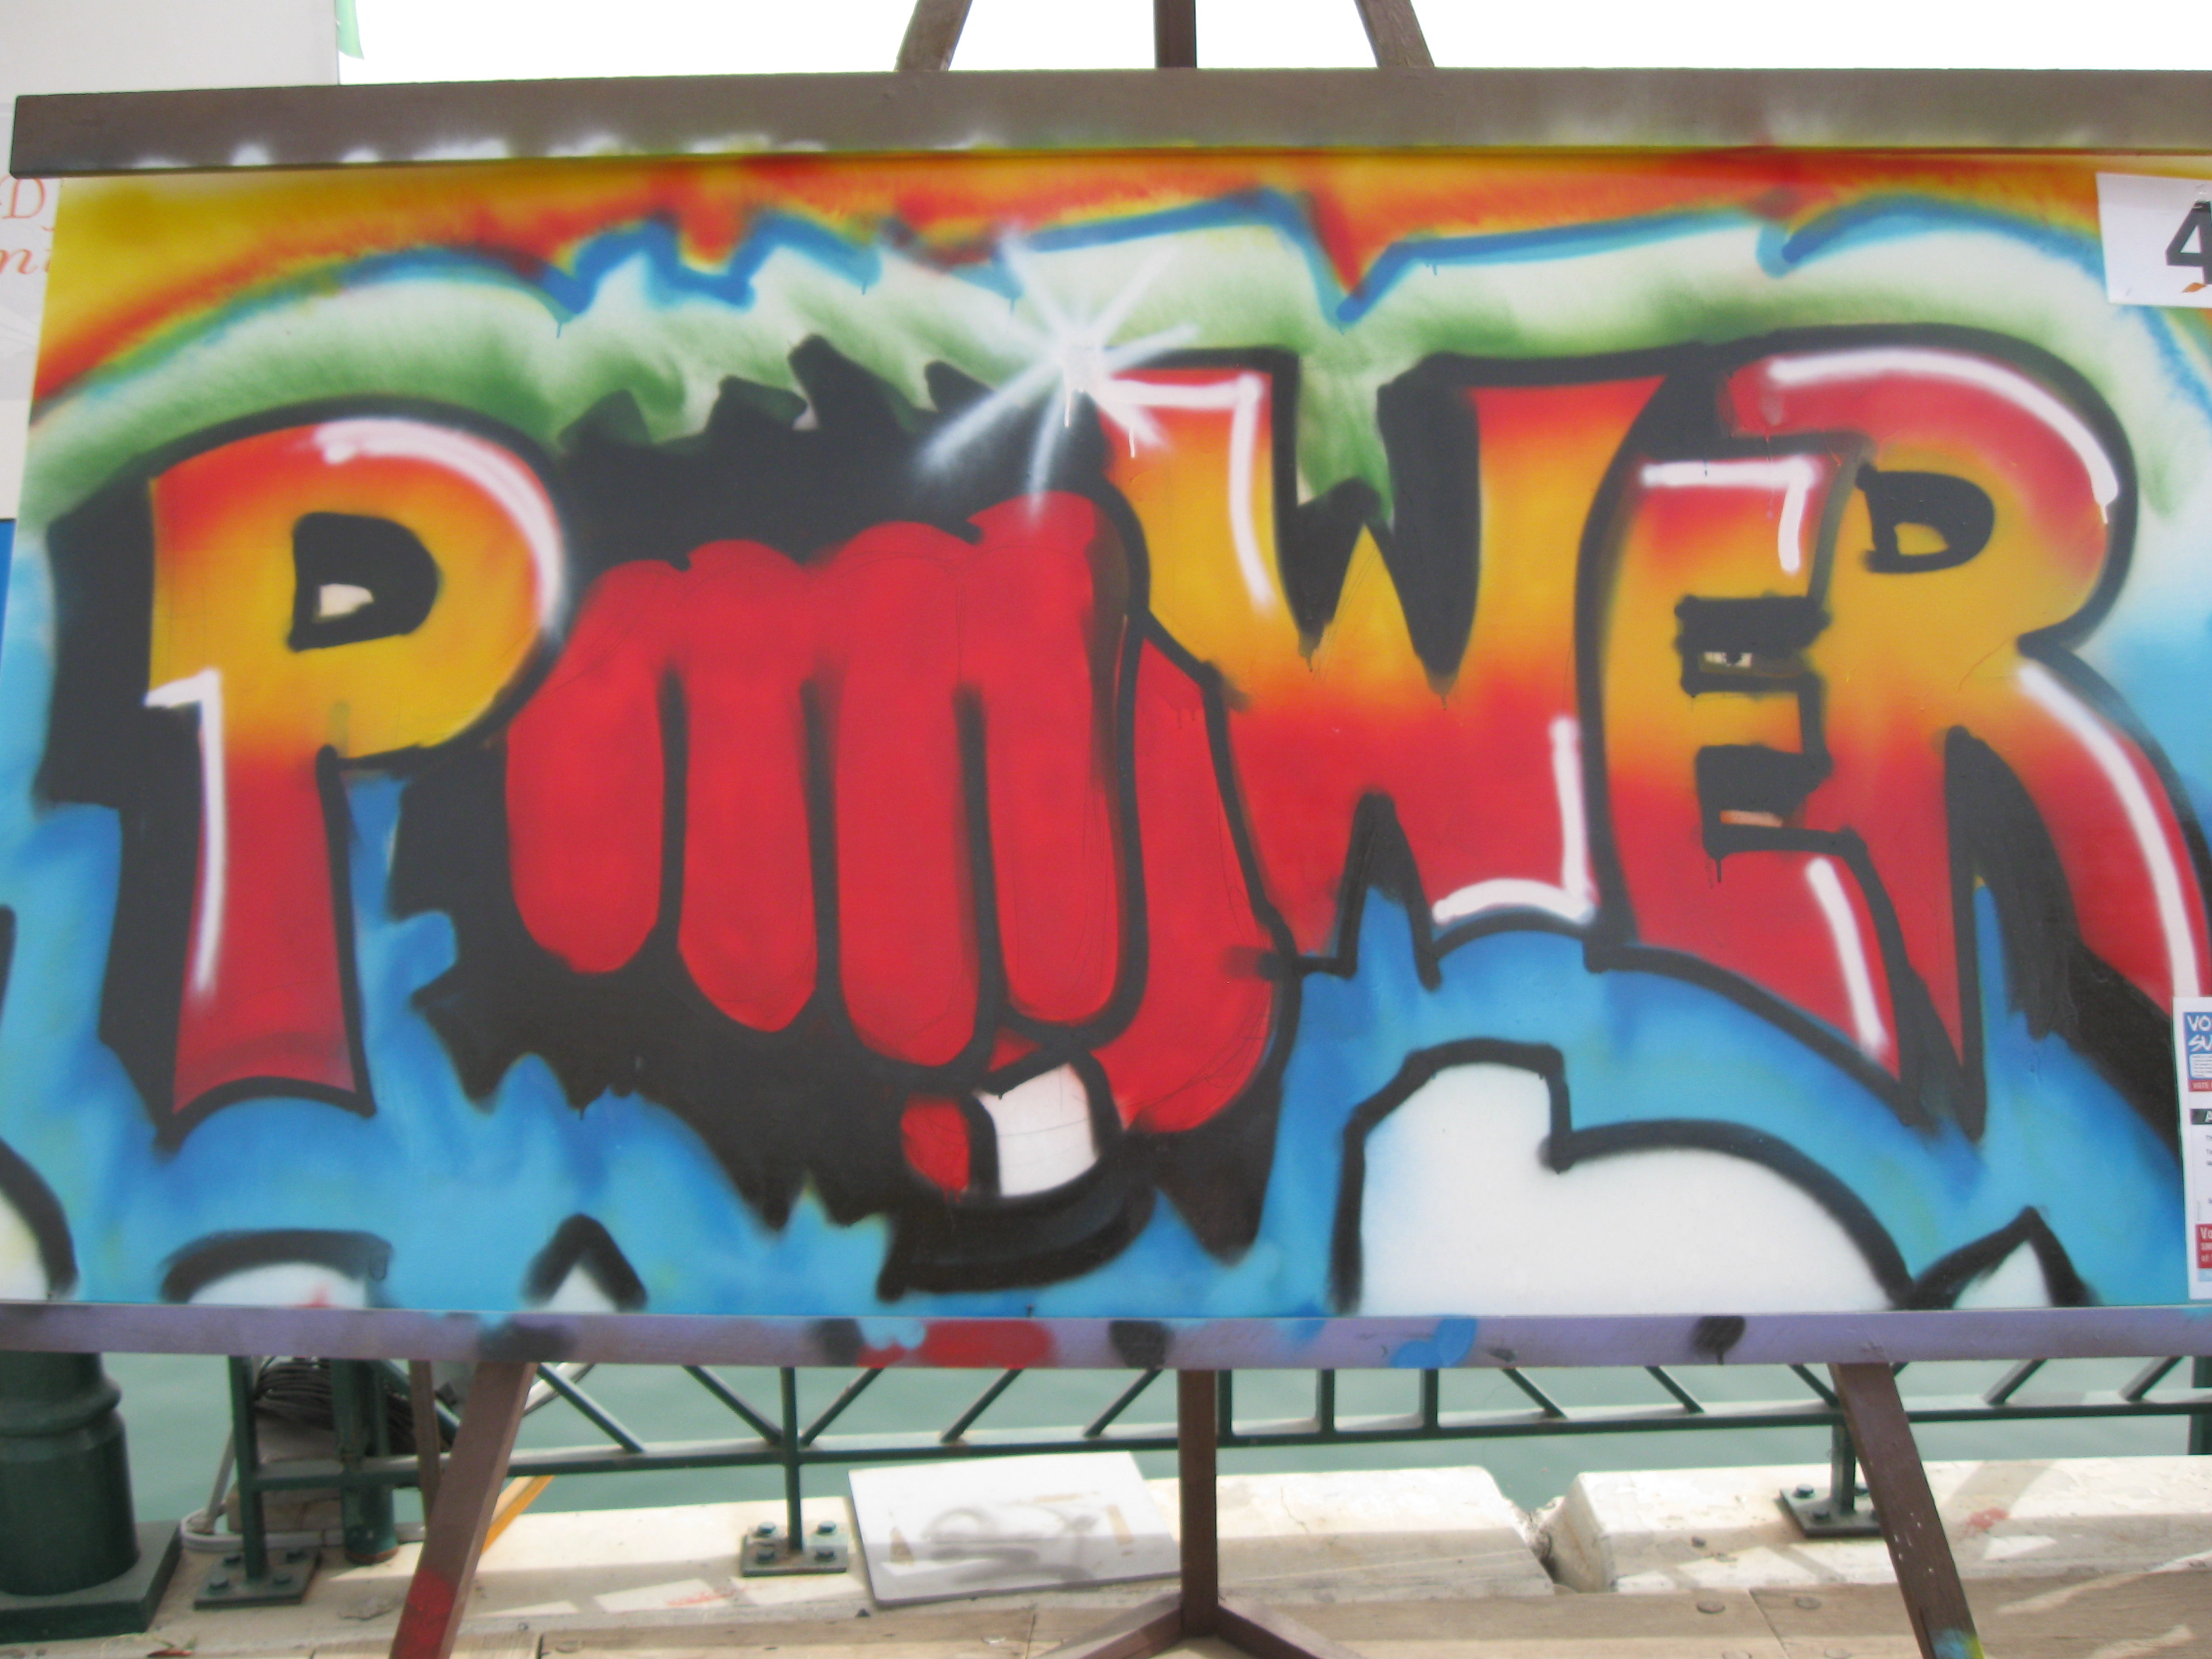 'Power' - one of the frontrunners for the three top spots as Kuwaitis continue to vote via SMS.